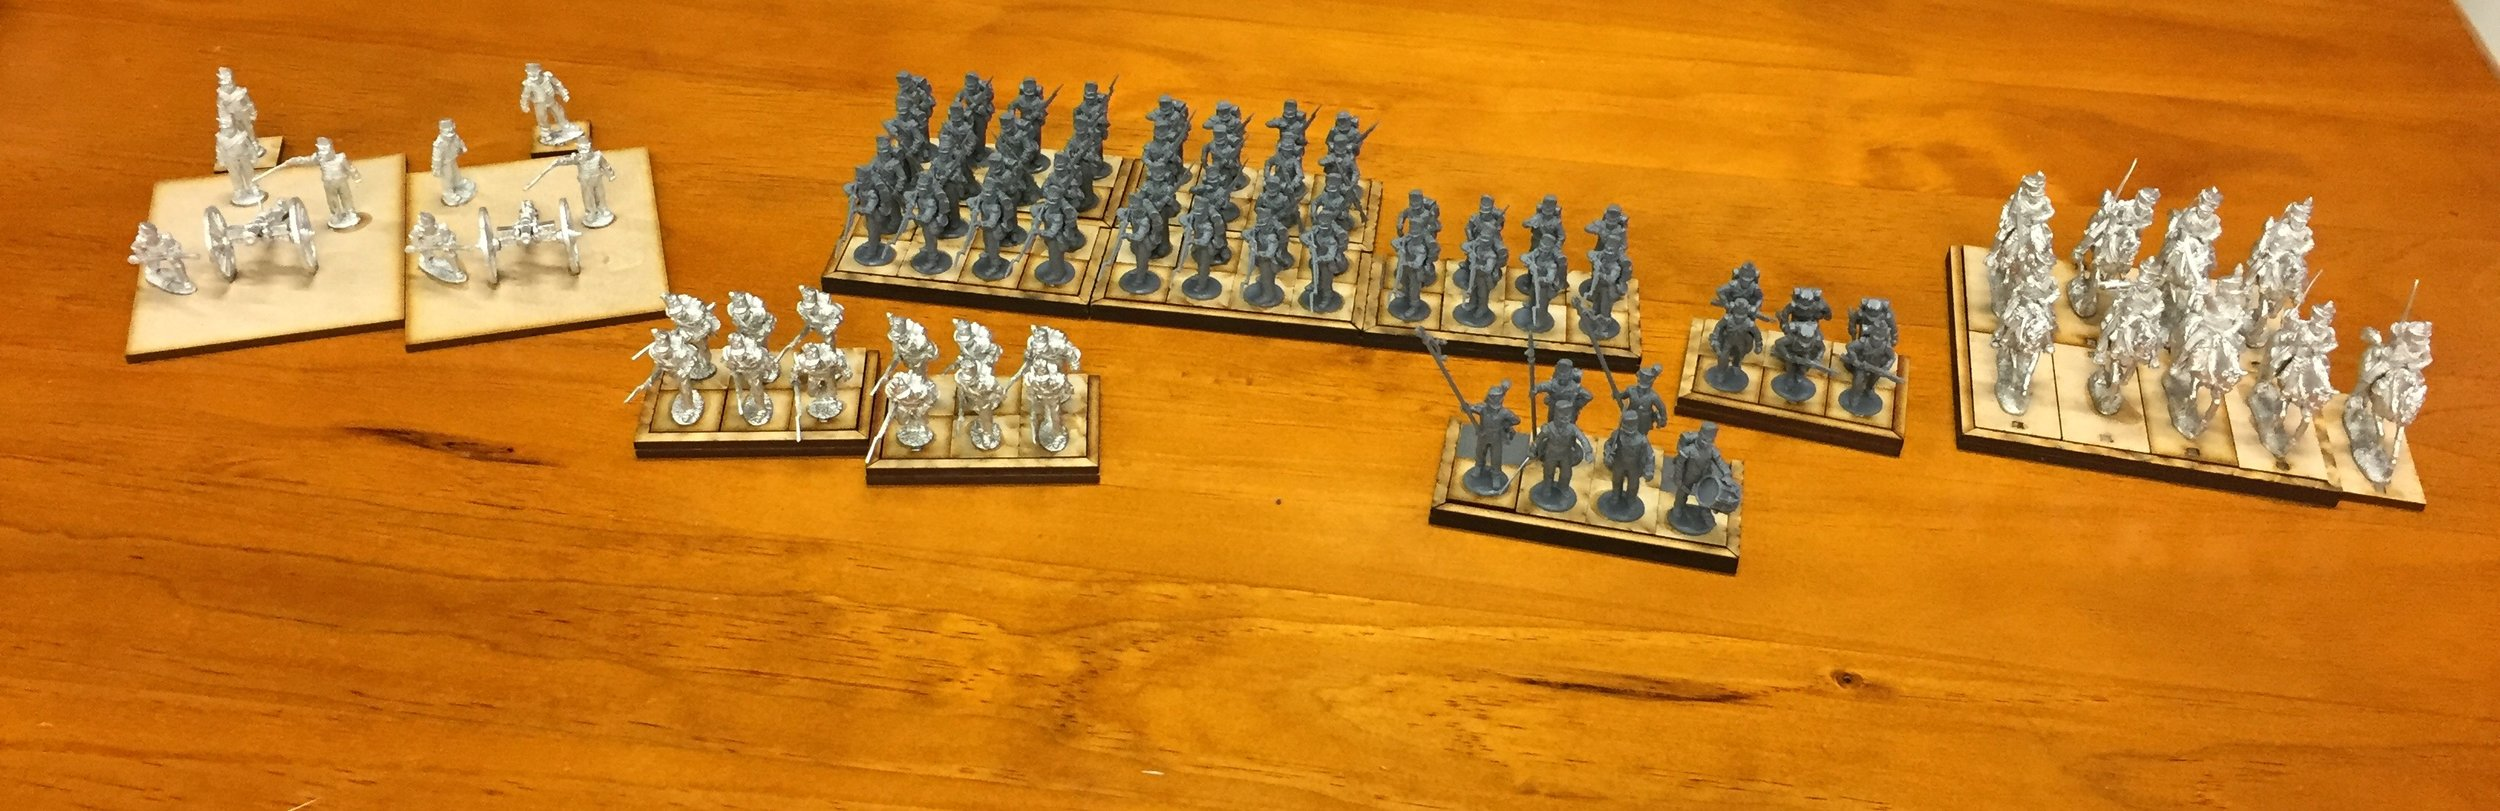 Giles' Perry Miniatures British force Cannon, metal skirmishers, plastic line, officers and rifles, and metal cavalry.